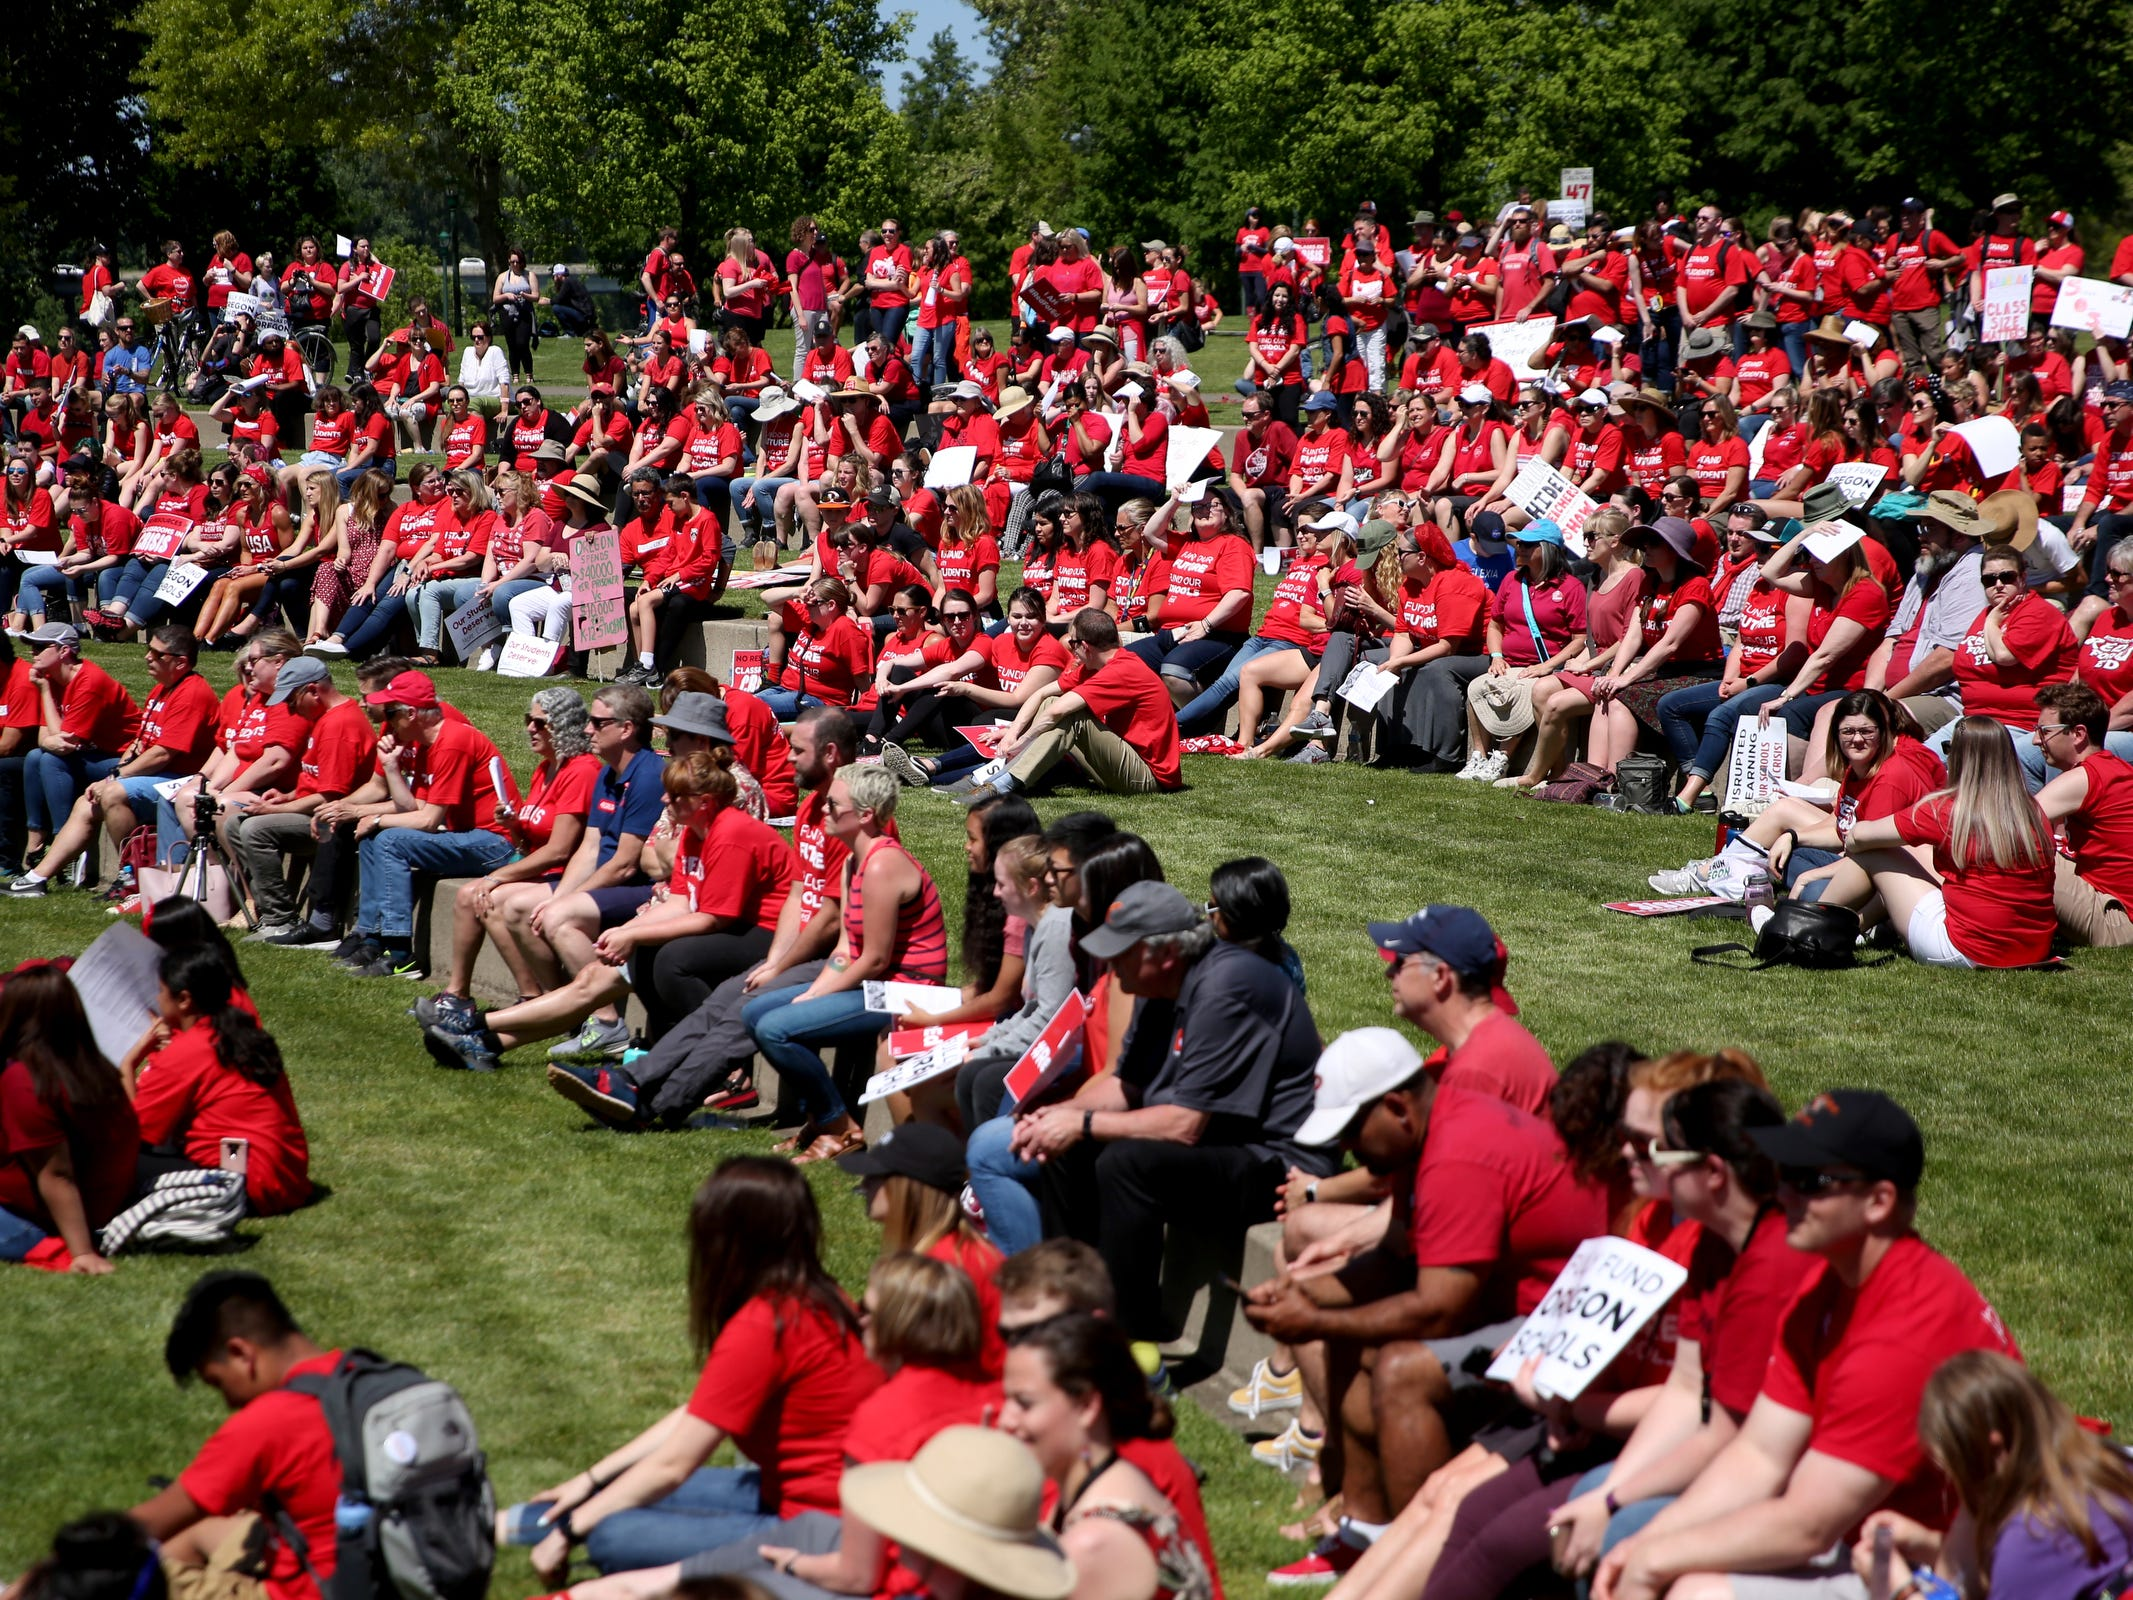 More than 2,000 teachers and education activists rally for a day of action starting at Riverfront Park in Salem on May 8, 2019. Schools across Oregon closed early or were closed for the day as teachers walked out to demand more school funding to address large class sizes, low graduation rates and other concerns.